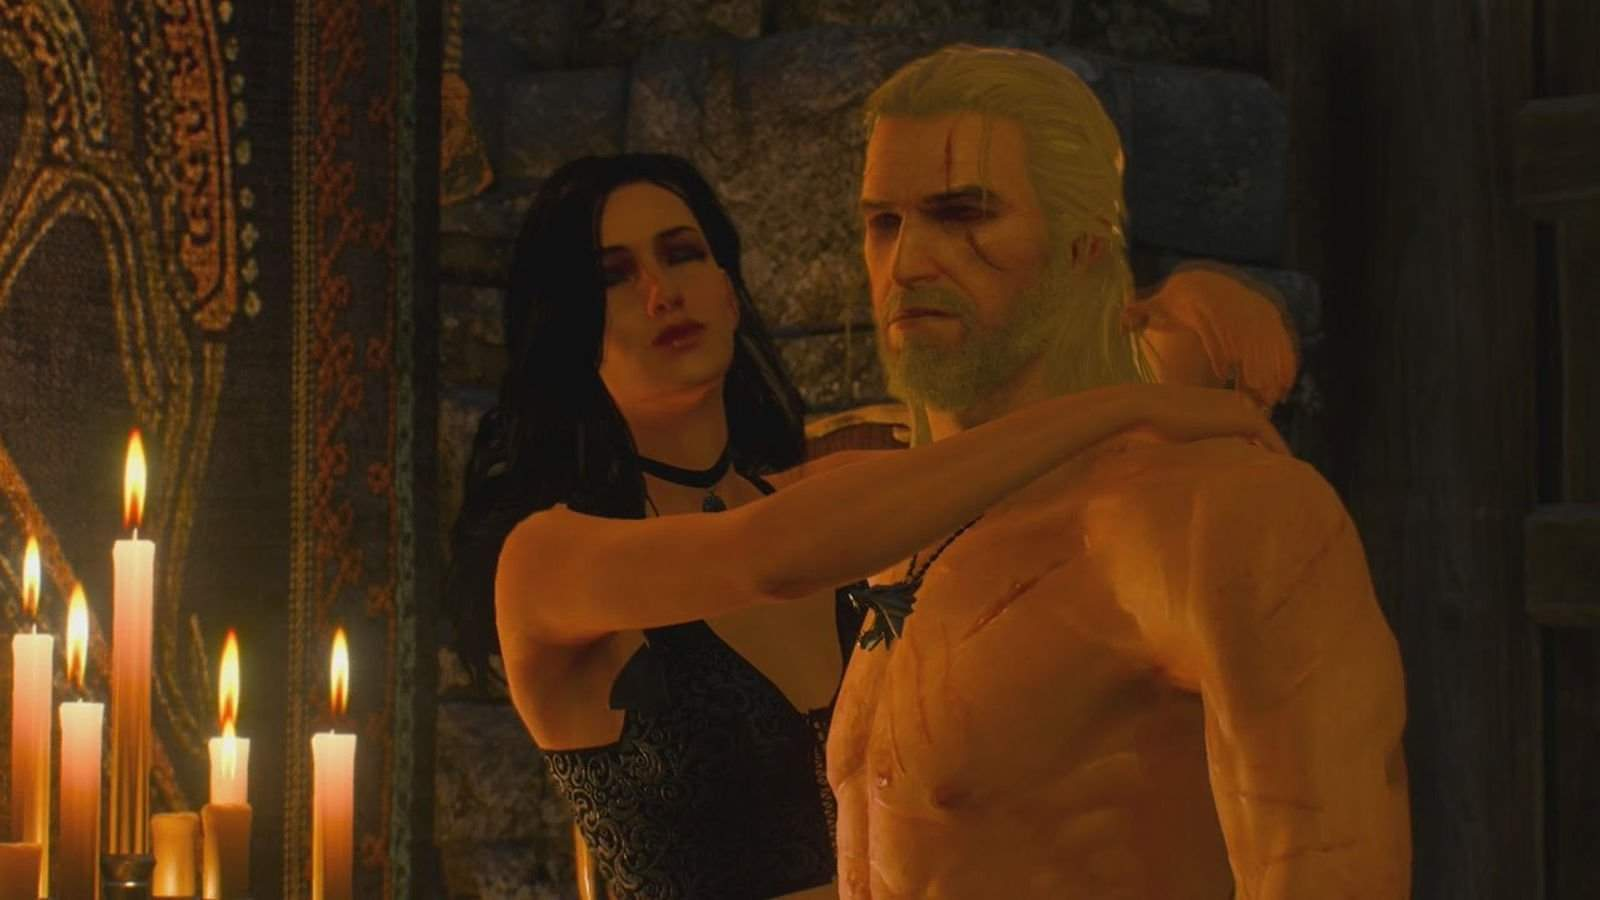 Vamers - FYI - Video Gaming - Geralt of Rivia voice actor says Witcher 3 sex scenes were awkward to record - 03